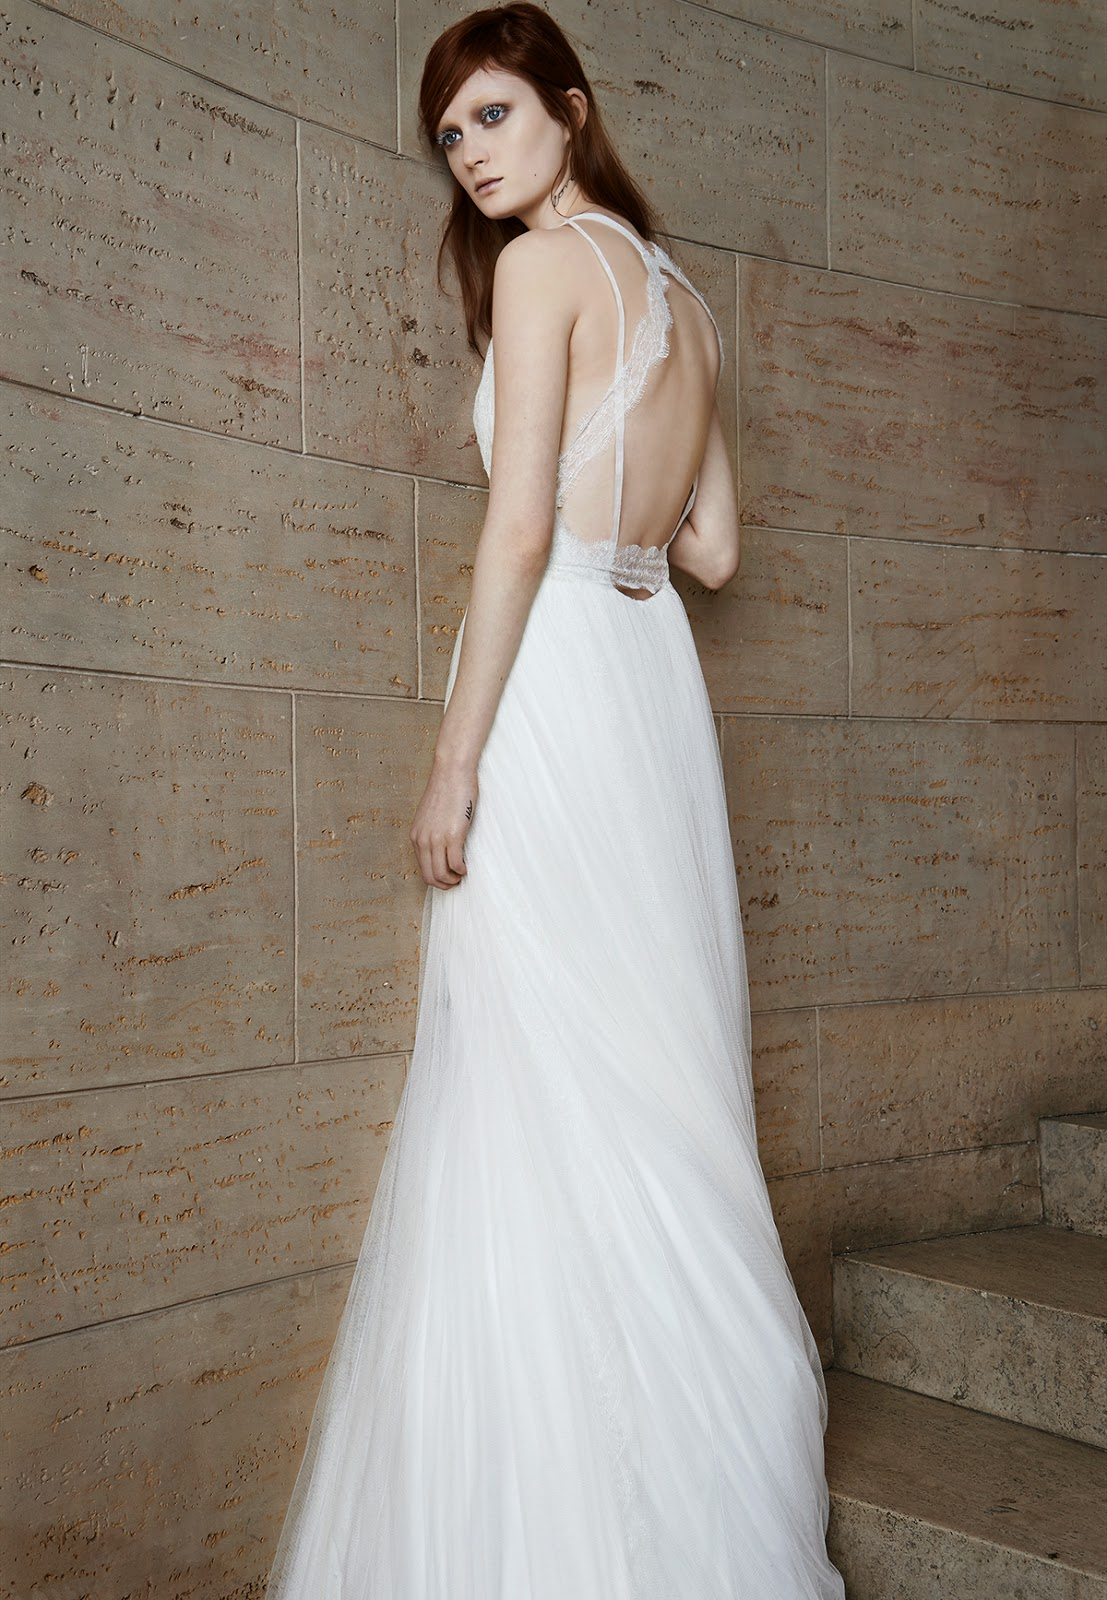 Vera wang 2015 spring wedding dress collection hot for Vera wang used wedding dress